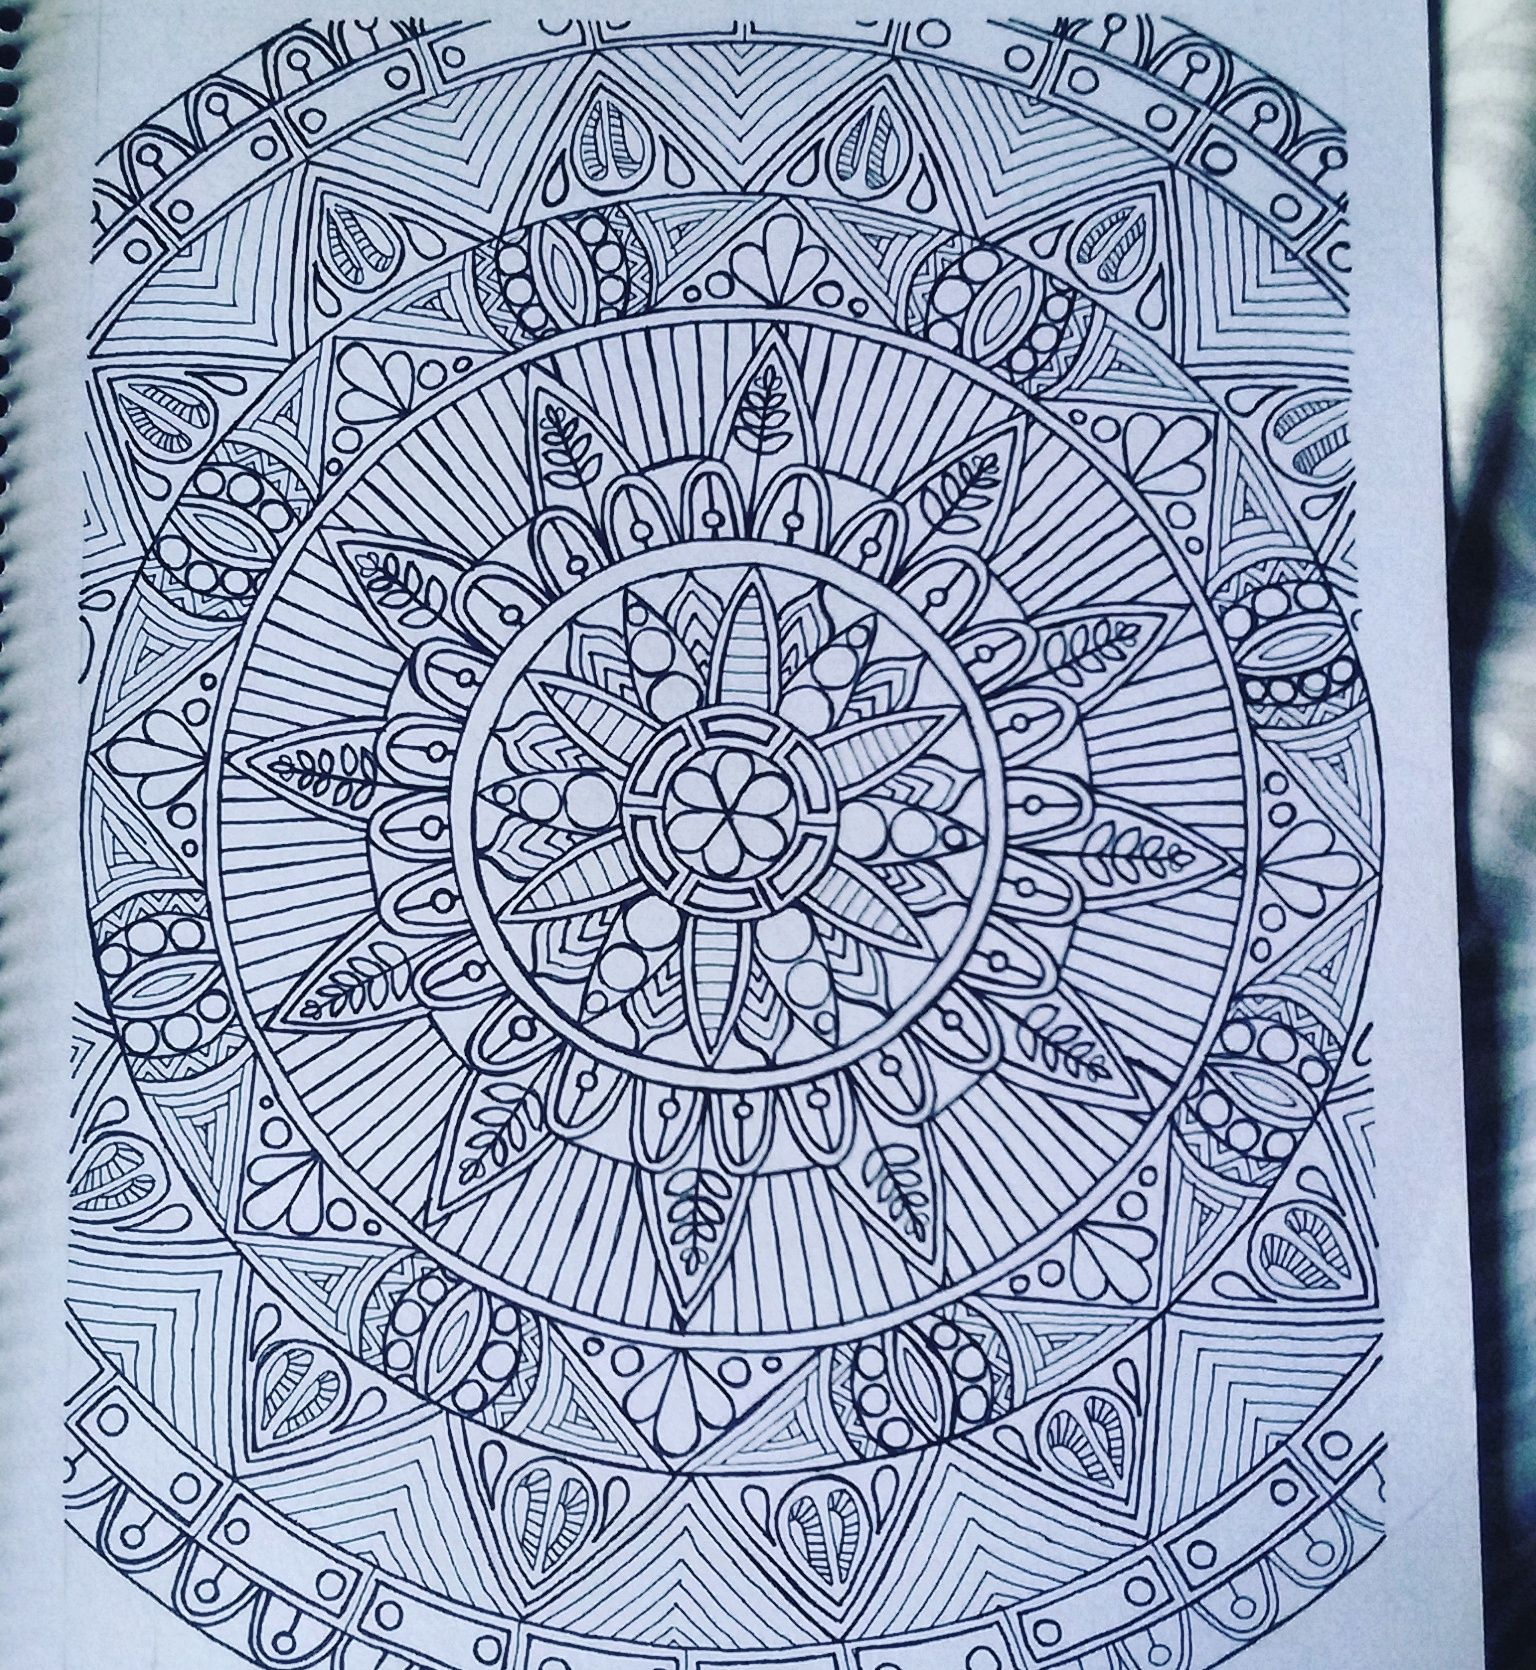 Mandala doodle zentangle adultcoloringbook drawing my first